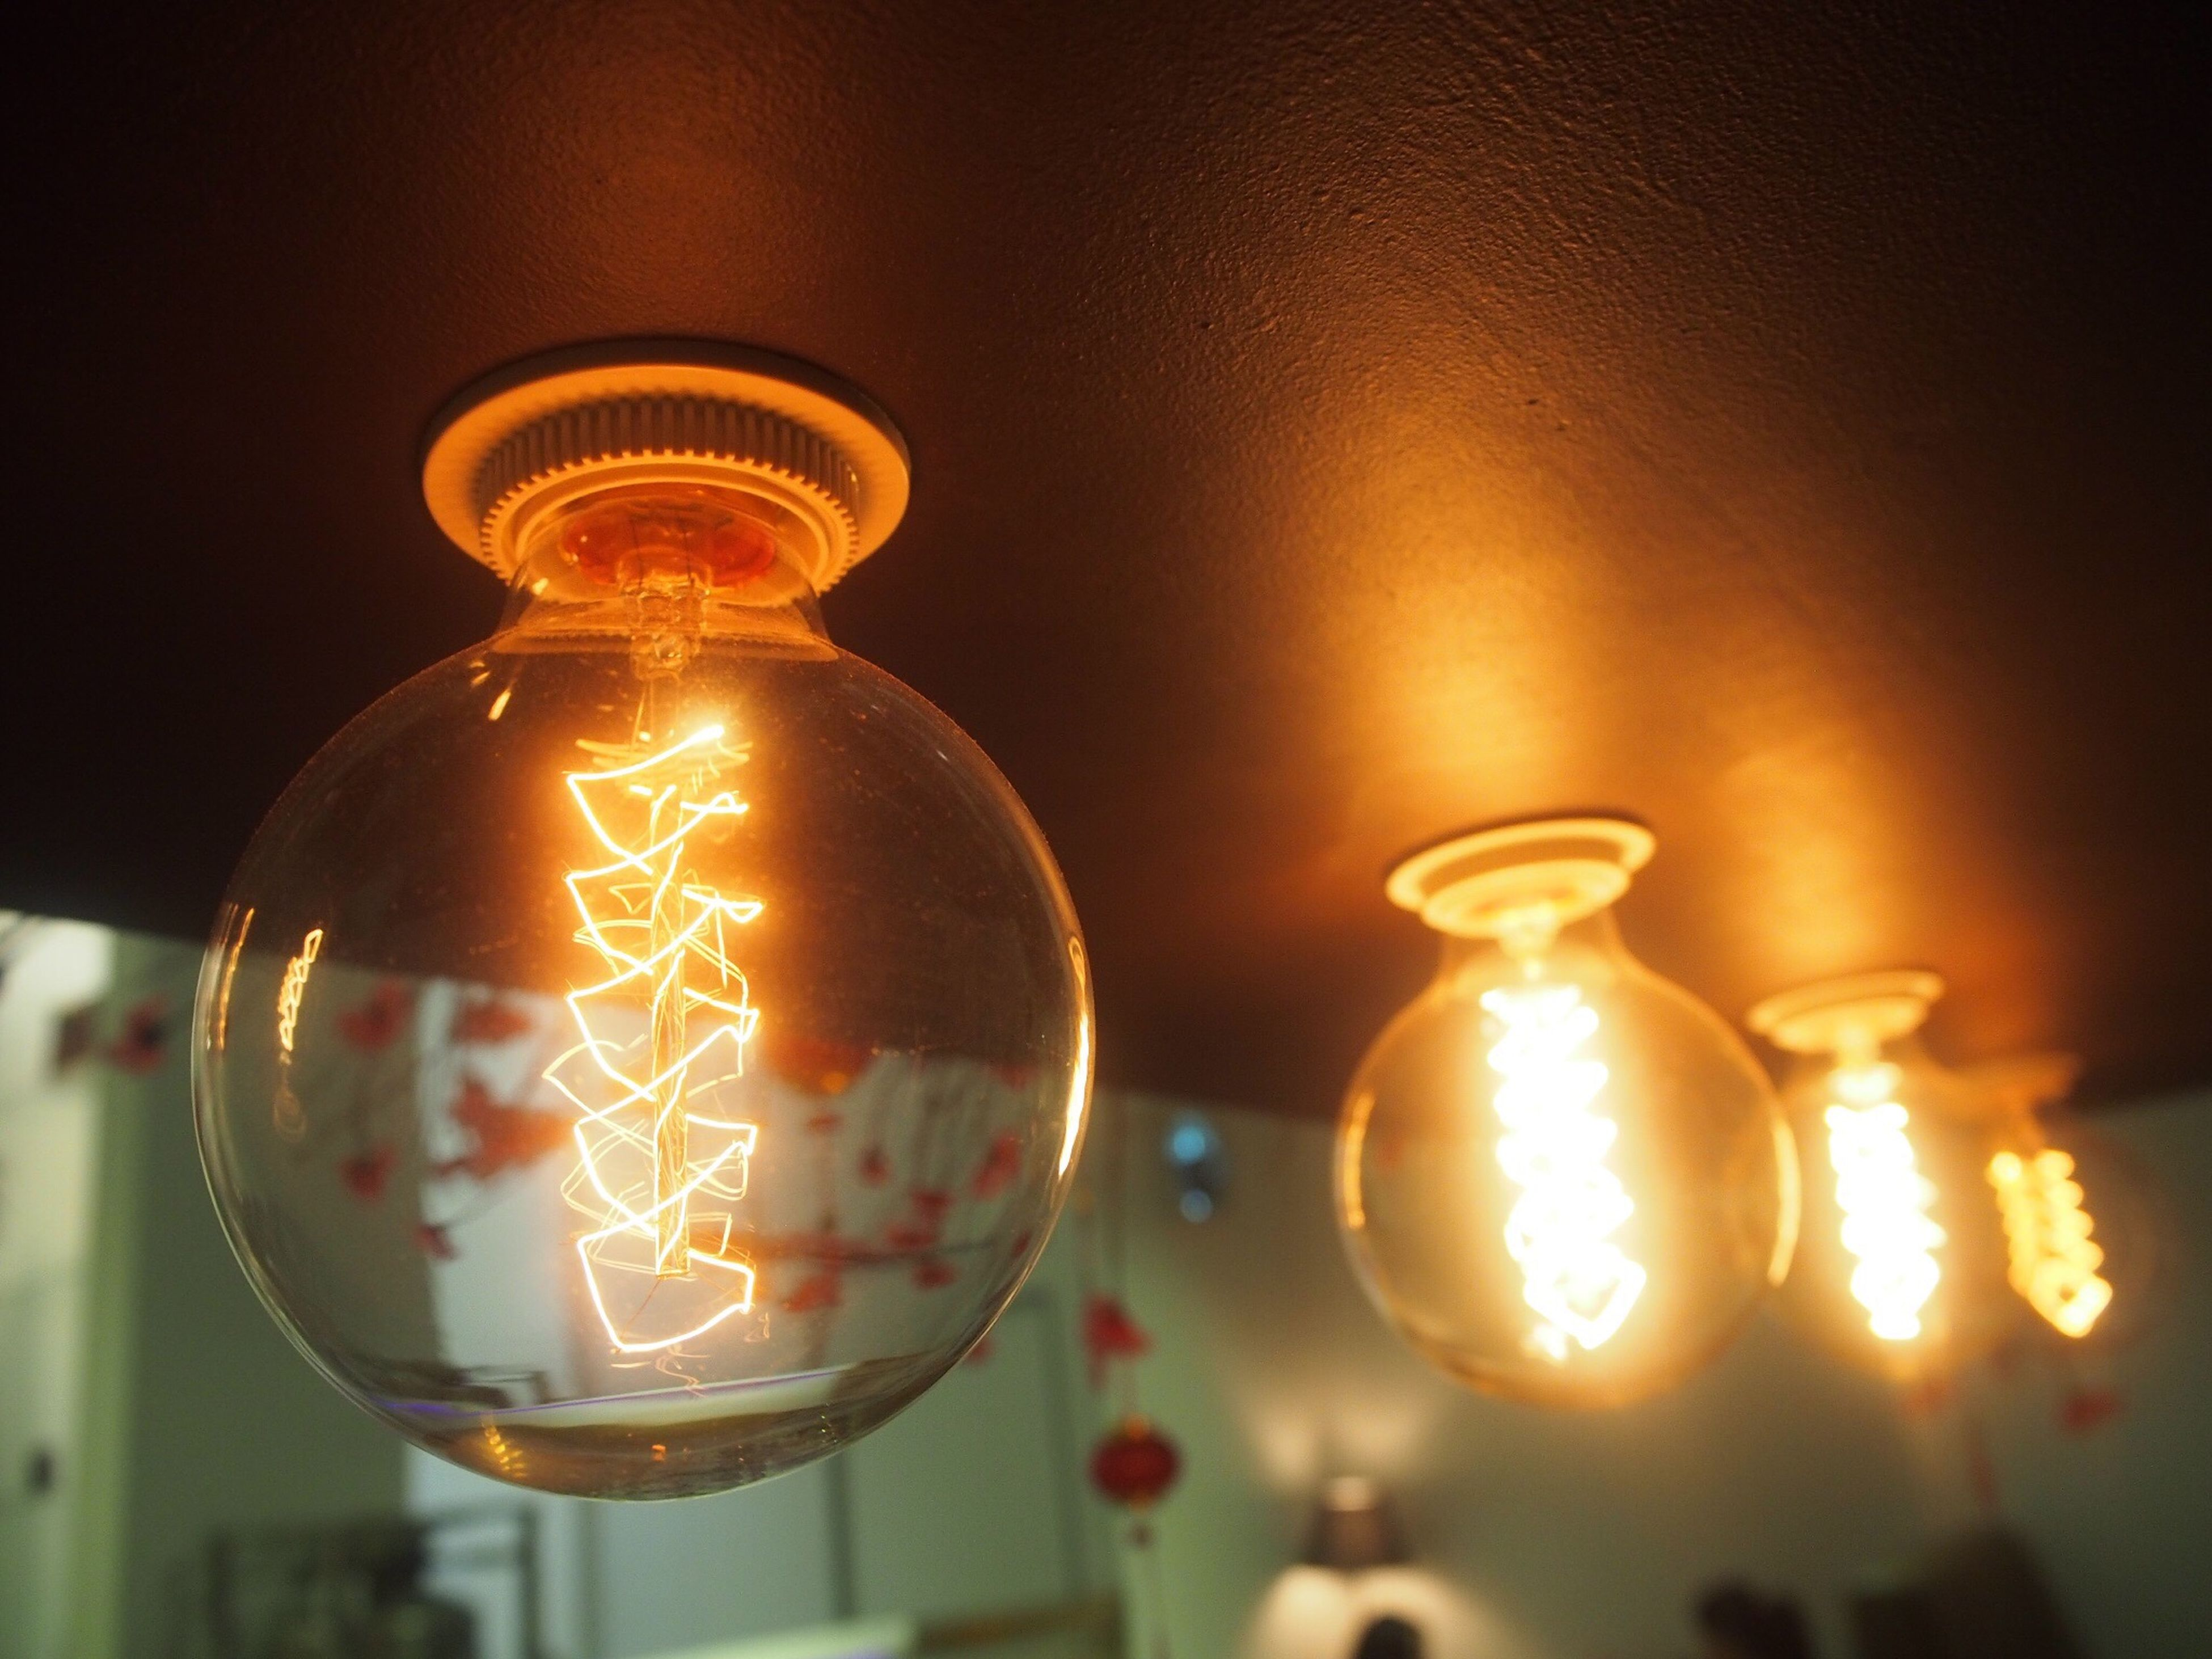 illuminated, electricity, lighting equipment, light bulb, hanging, close-up, no people, filament, indoors, low angle view